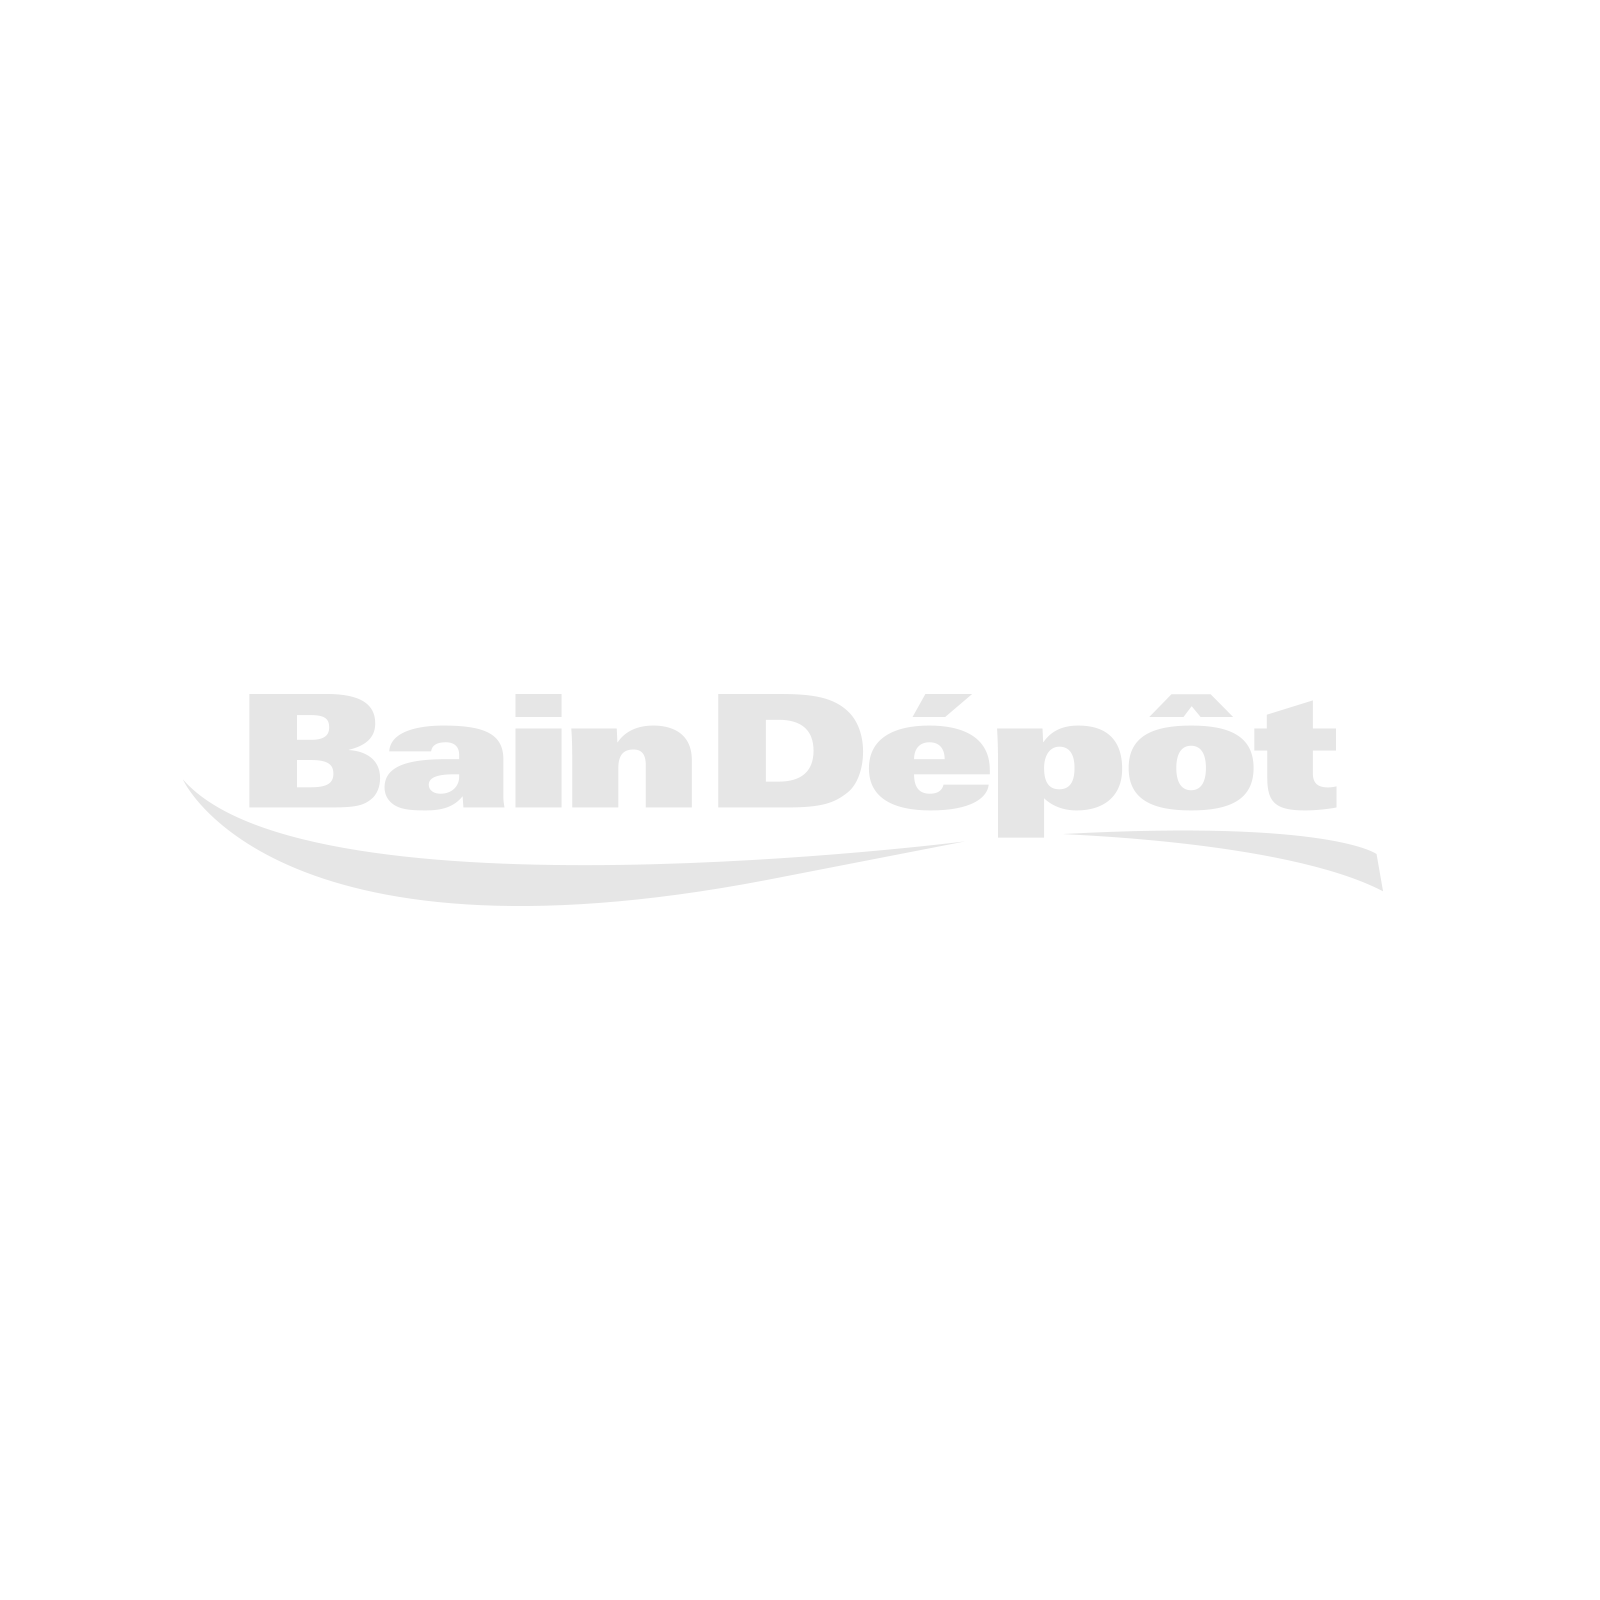 Chrome wall-mount or freestanding tub faucet with cross handles